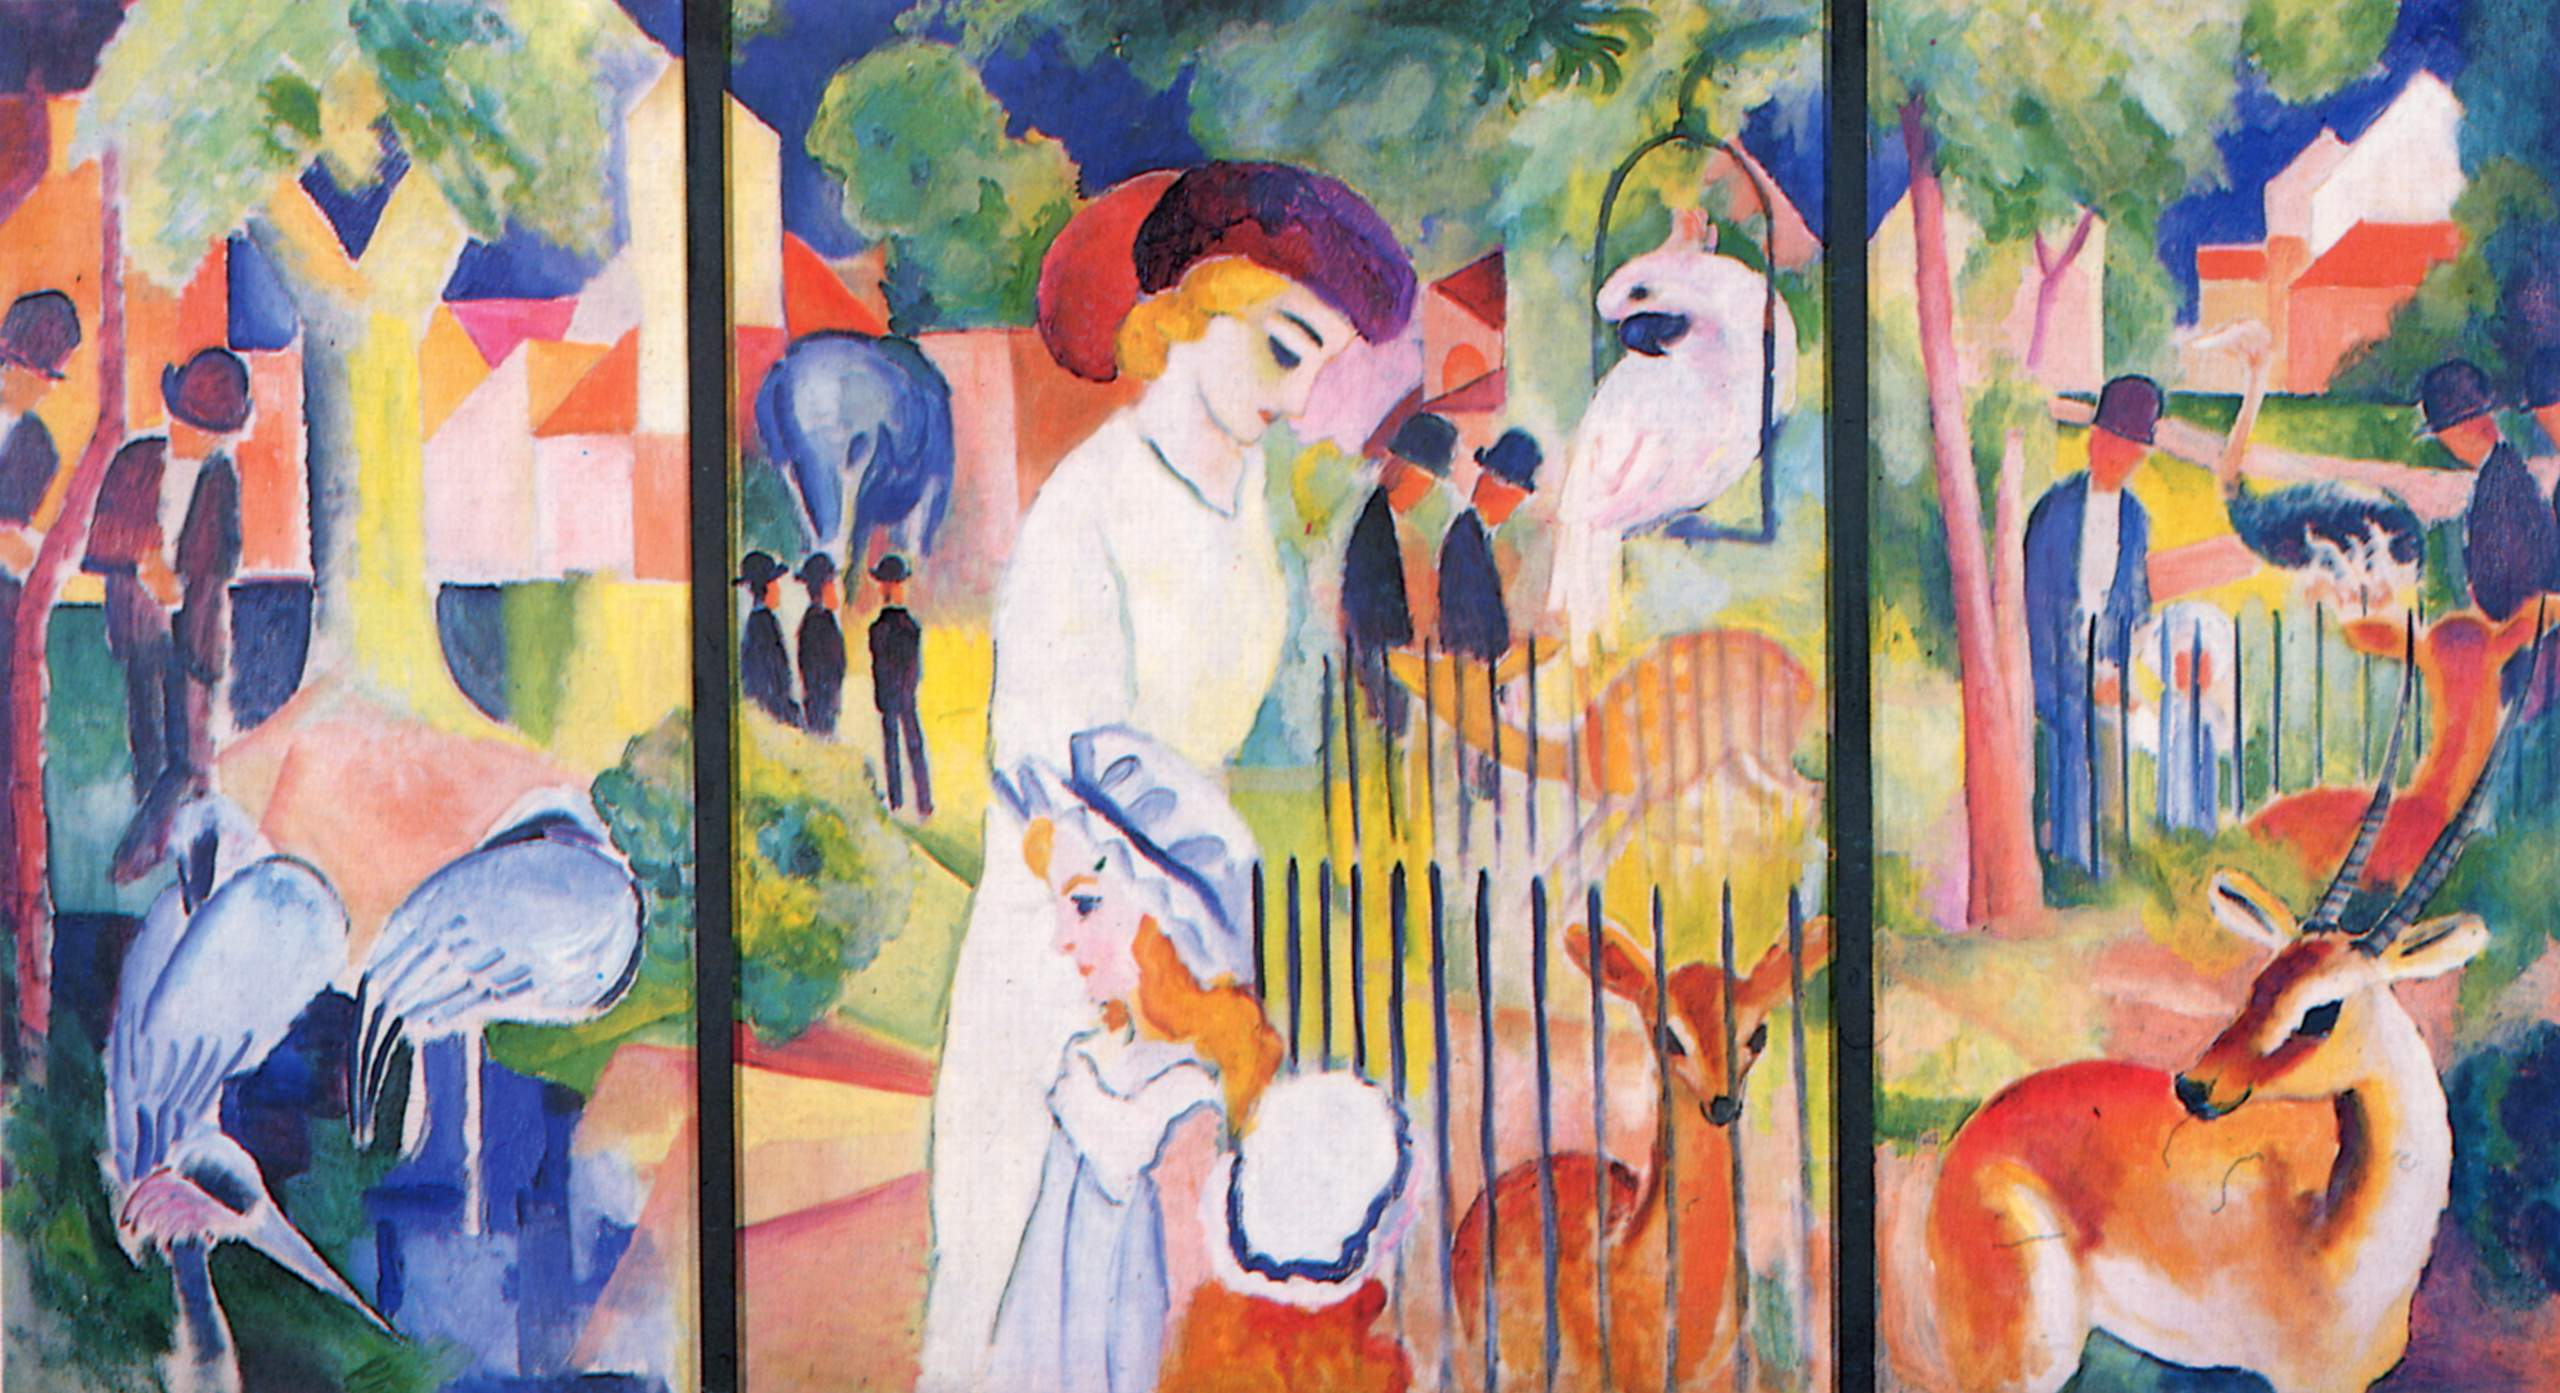 http://upload.wikimedia.org/wikipedia/commons/a/af/August_Macke_015.jpg